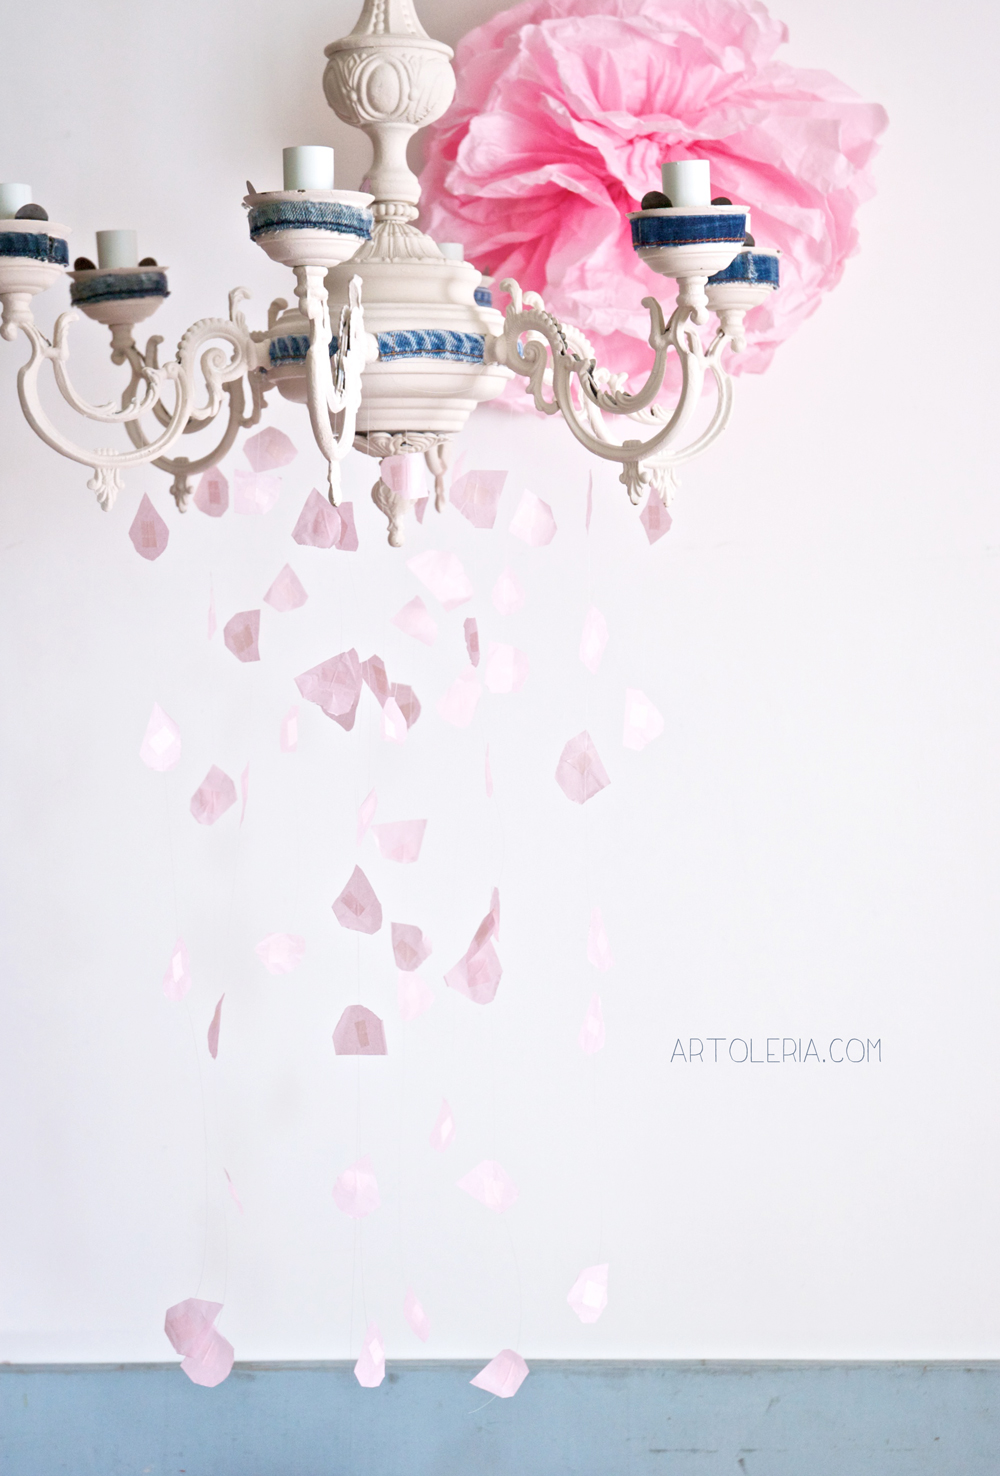 home decor Paper decor DIY Artoleria